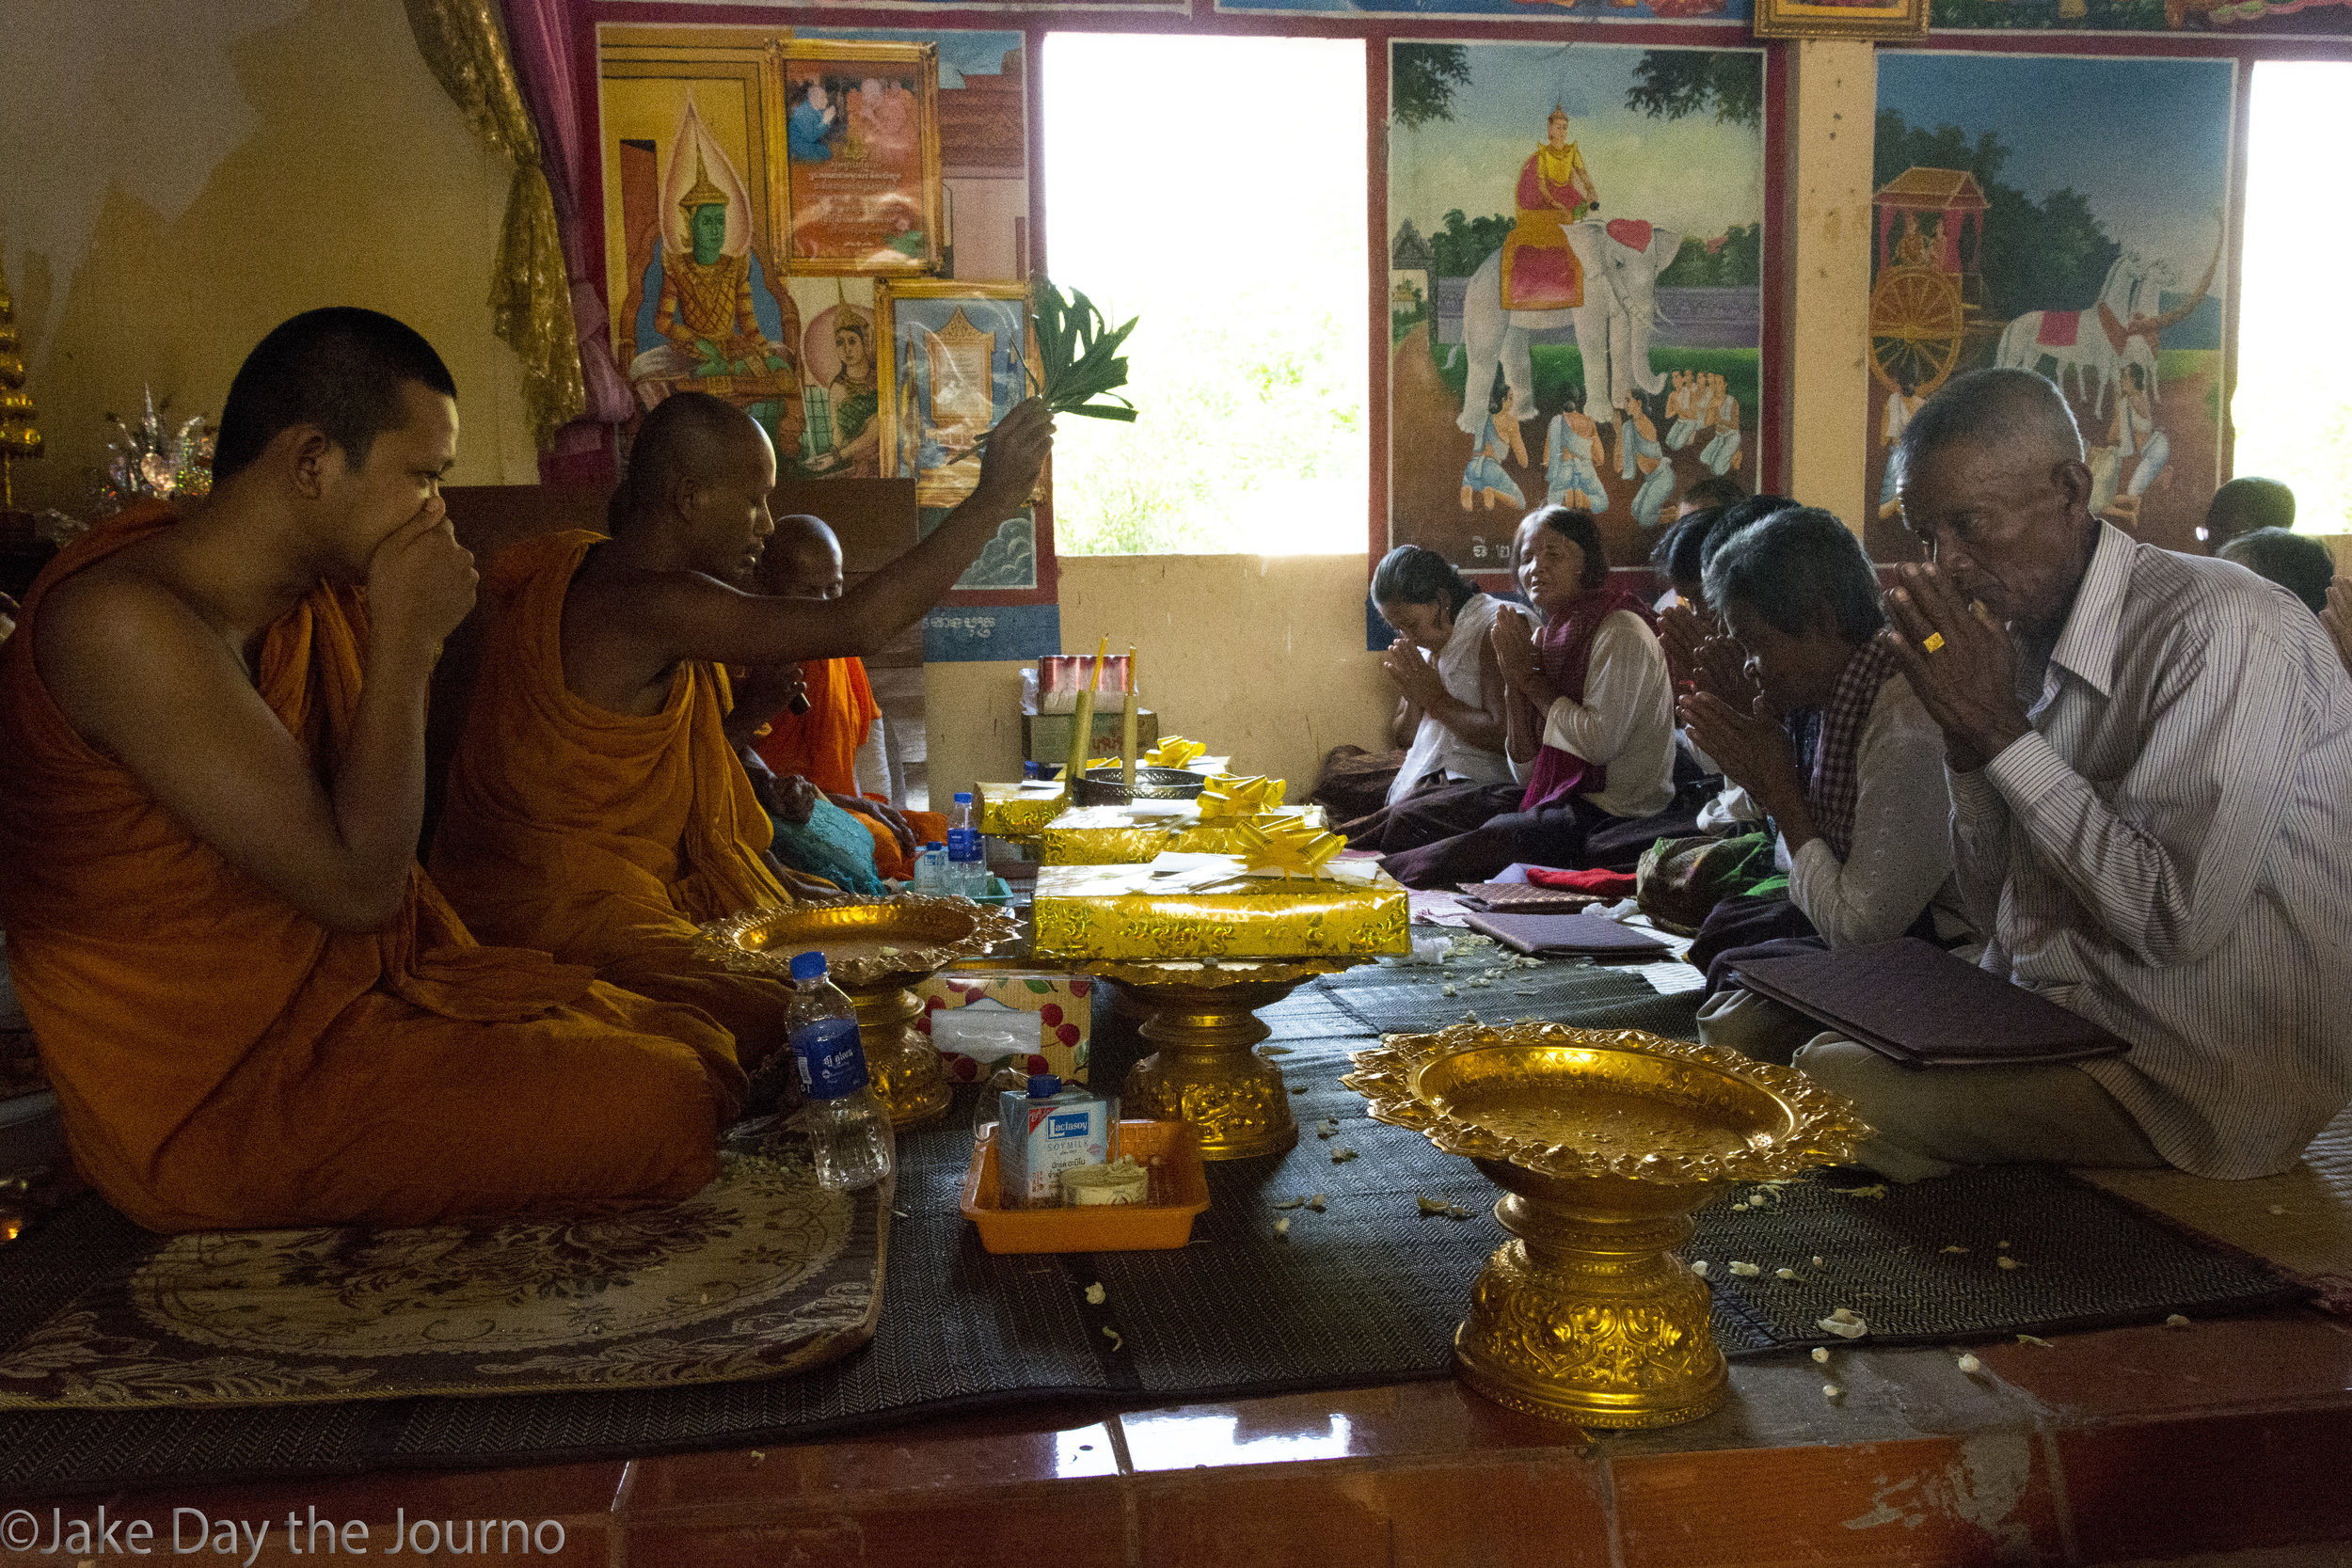 Monks Soeuy Boeurn, 18, Ply Louhong, 38, Chhun Da, 44, and Leourm Hem, 87, give blessings to survivors Theurt Thoy, 54, Seaong Hiep, 65, Yim Saroeum, 64, Phang Navy, 52, Chea Noeurn, 68, and Klav Kleum, 65, during a testimonial ceremony organised by the Transcultural Psychosocial Organisation for the 'Healing and Reconciliation for Victims of Torture of Khmer Rouge Trauma' program at Ta Ann village, Ta Ann commune, Kralanh district, Siem Reap province on 18/01/18 by Jake Day.